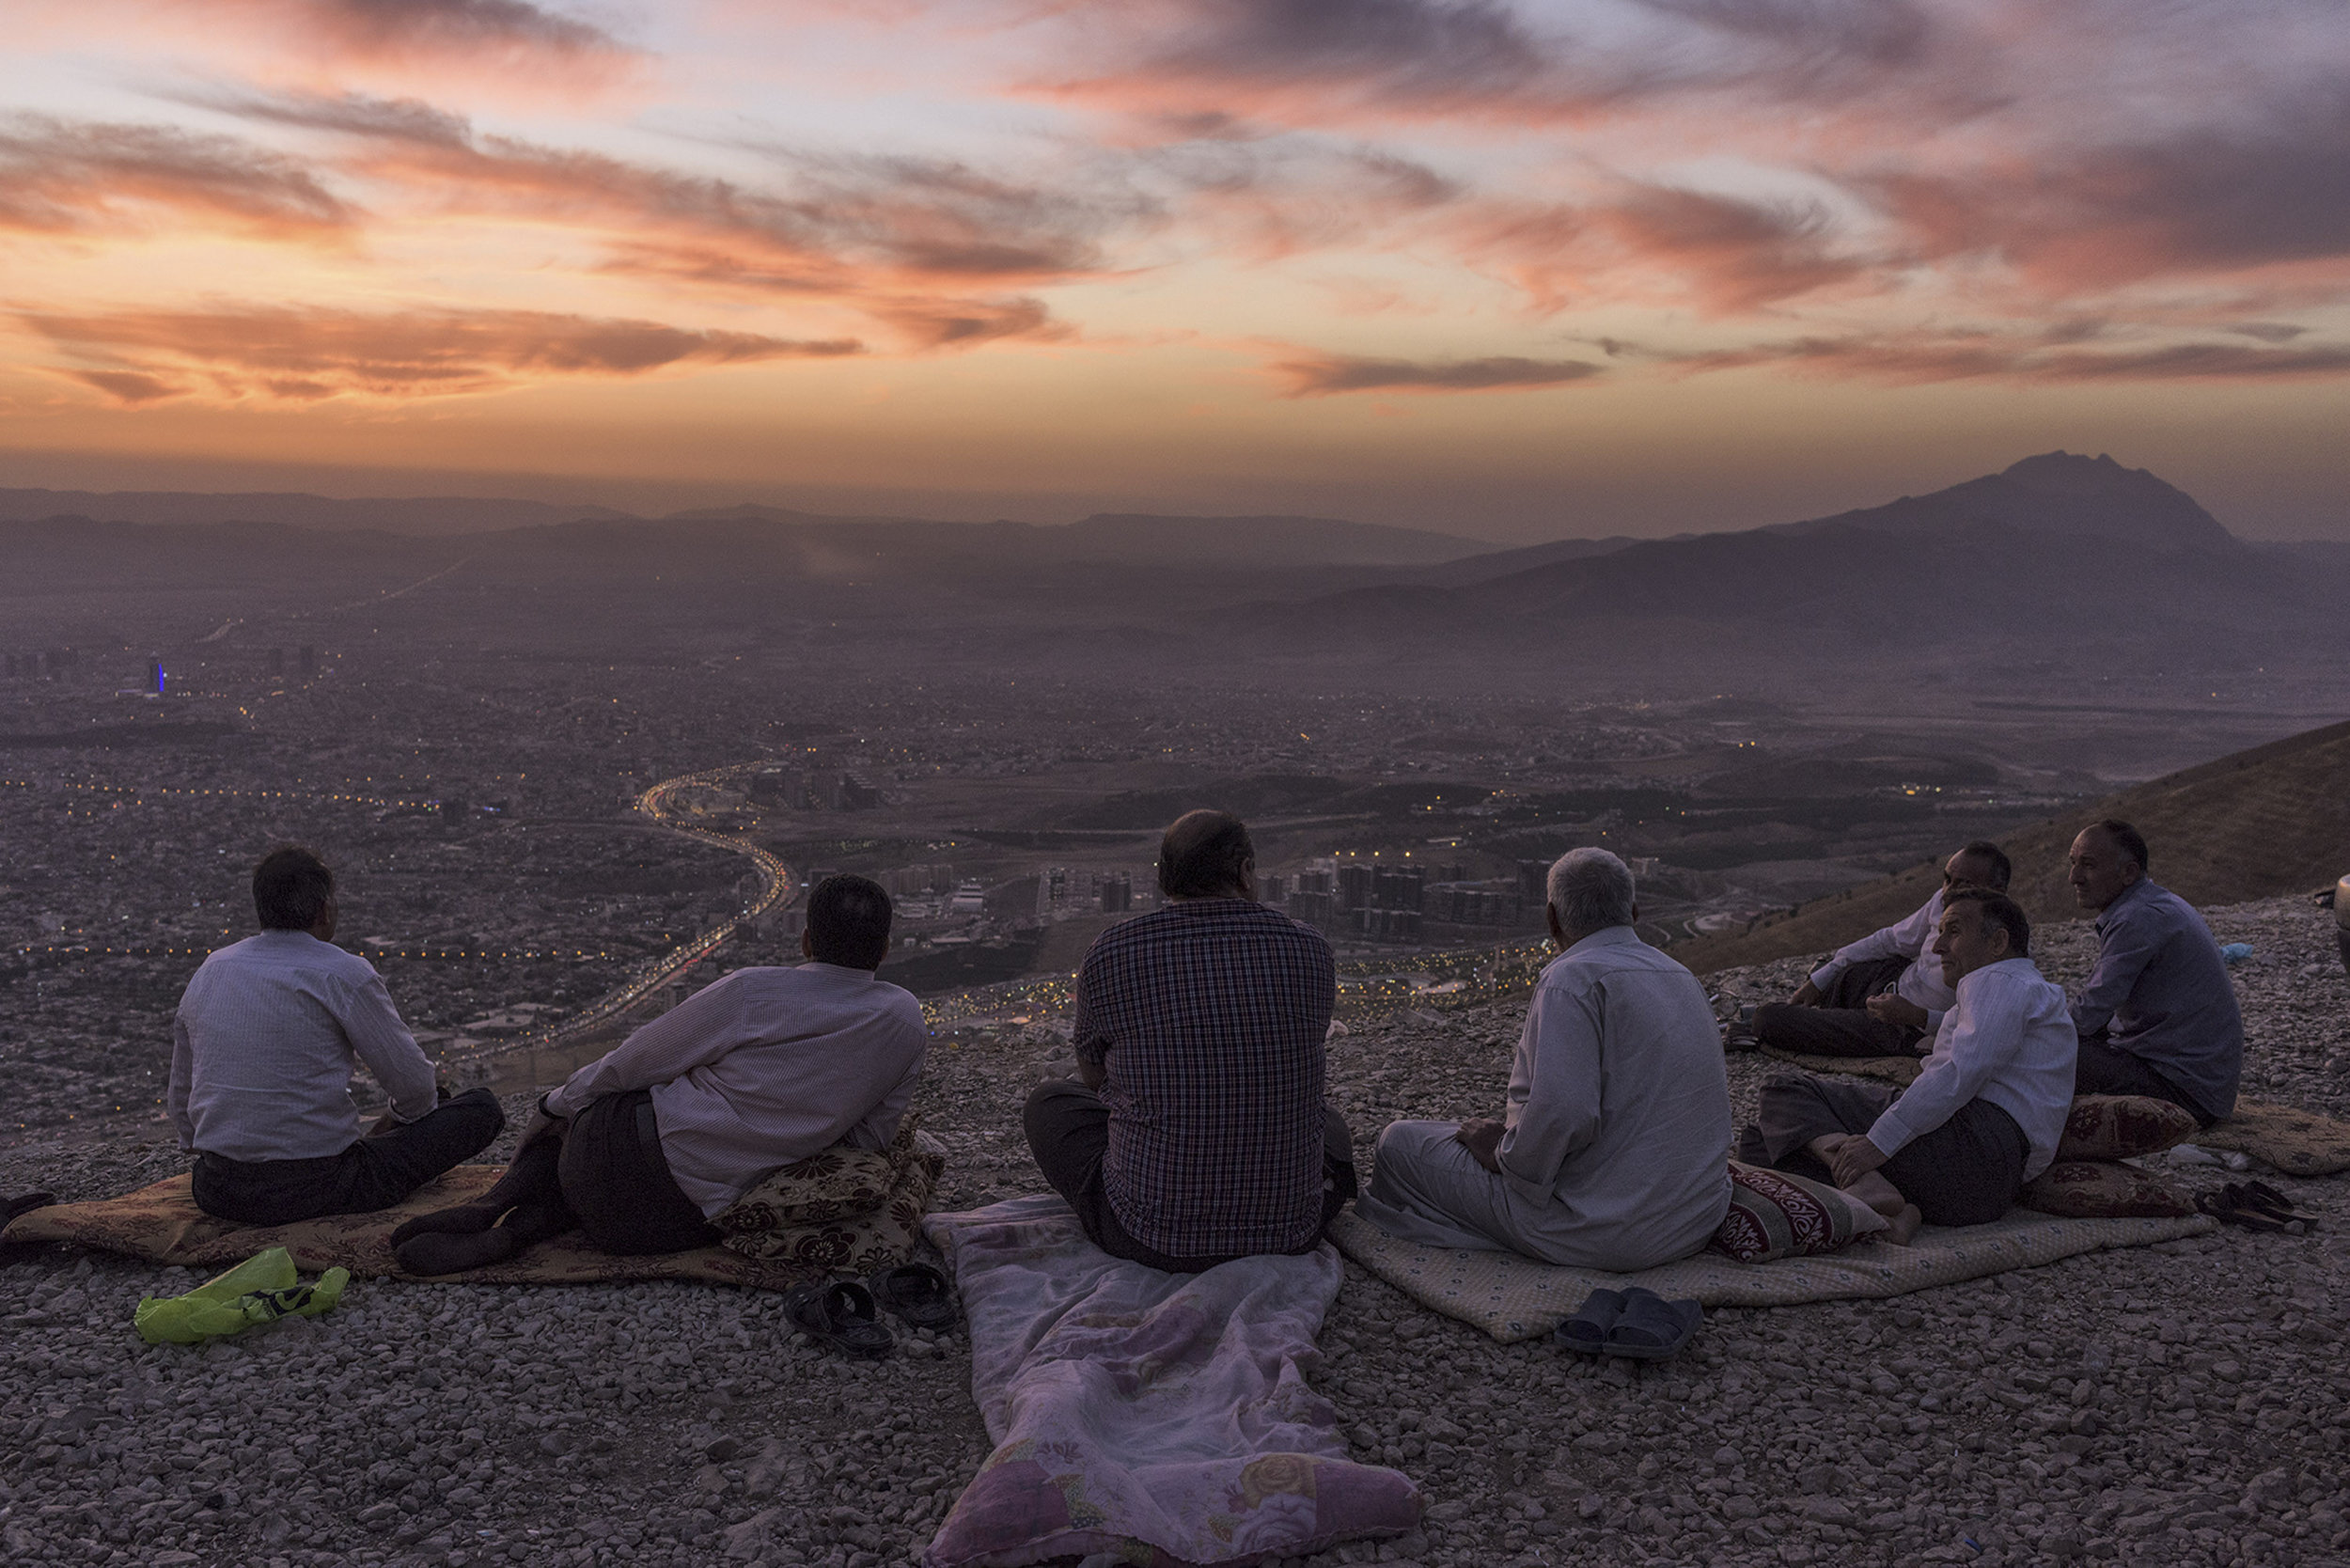 Iraq, Iraqi Kurdistan, Sulaymaniyah, 25 September 2015  The view of the city from the northeastern Goyje Mountain